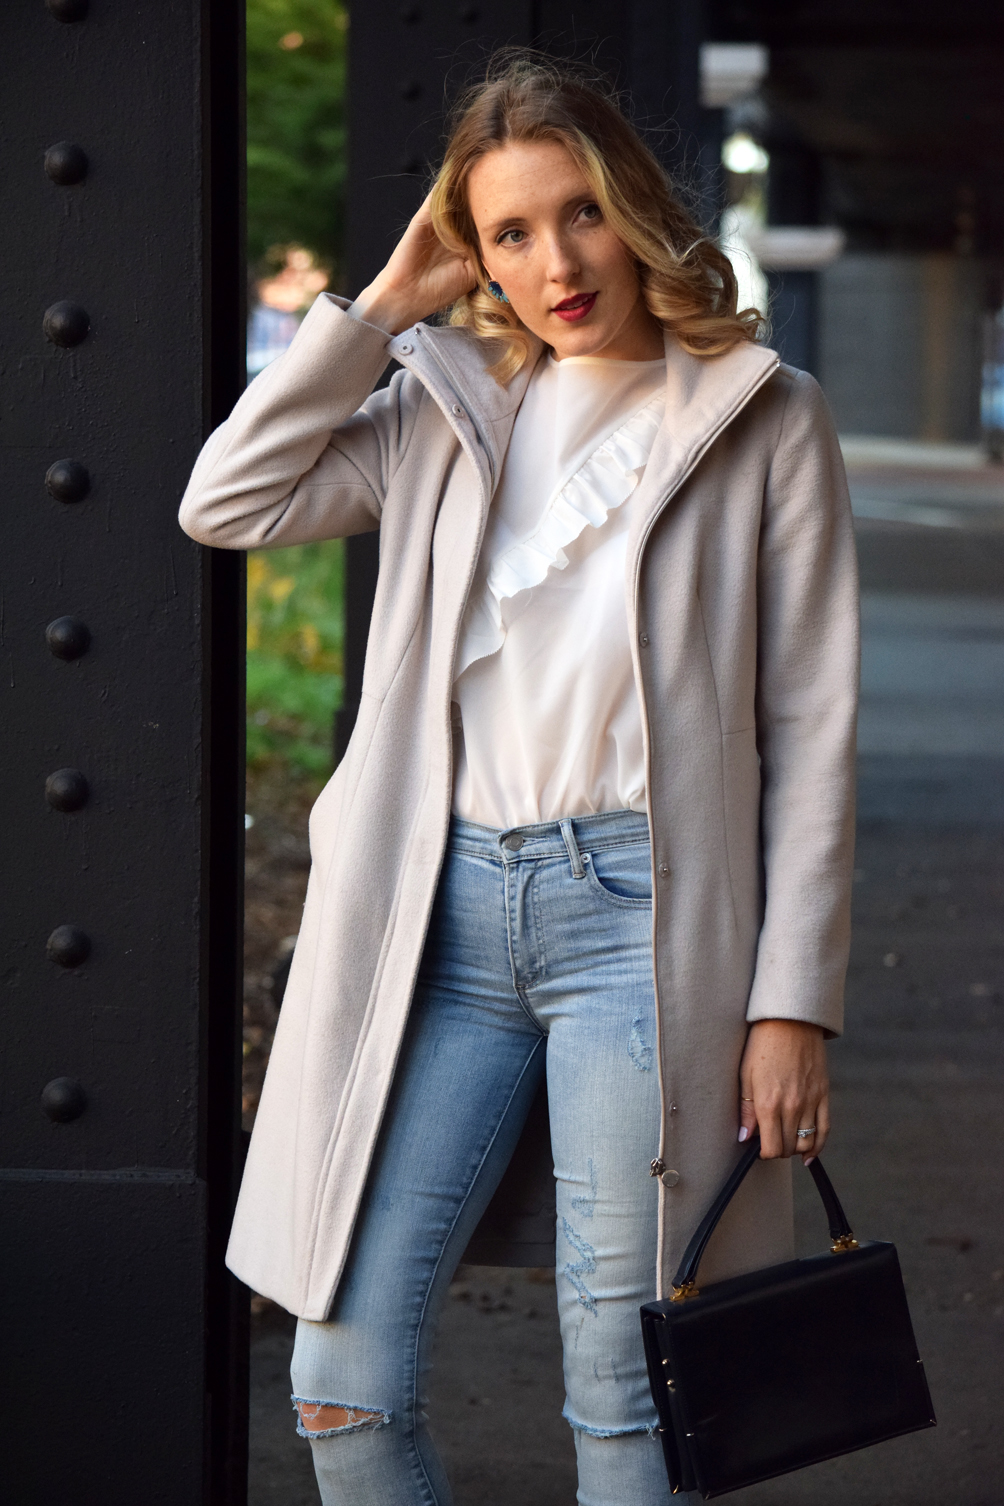 ruffled top with high waisted jeans